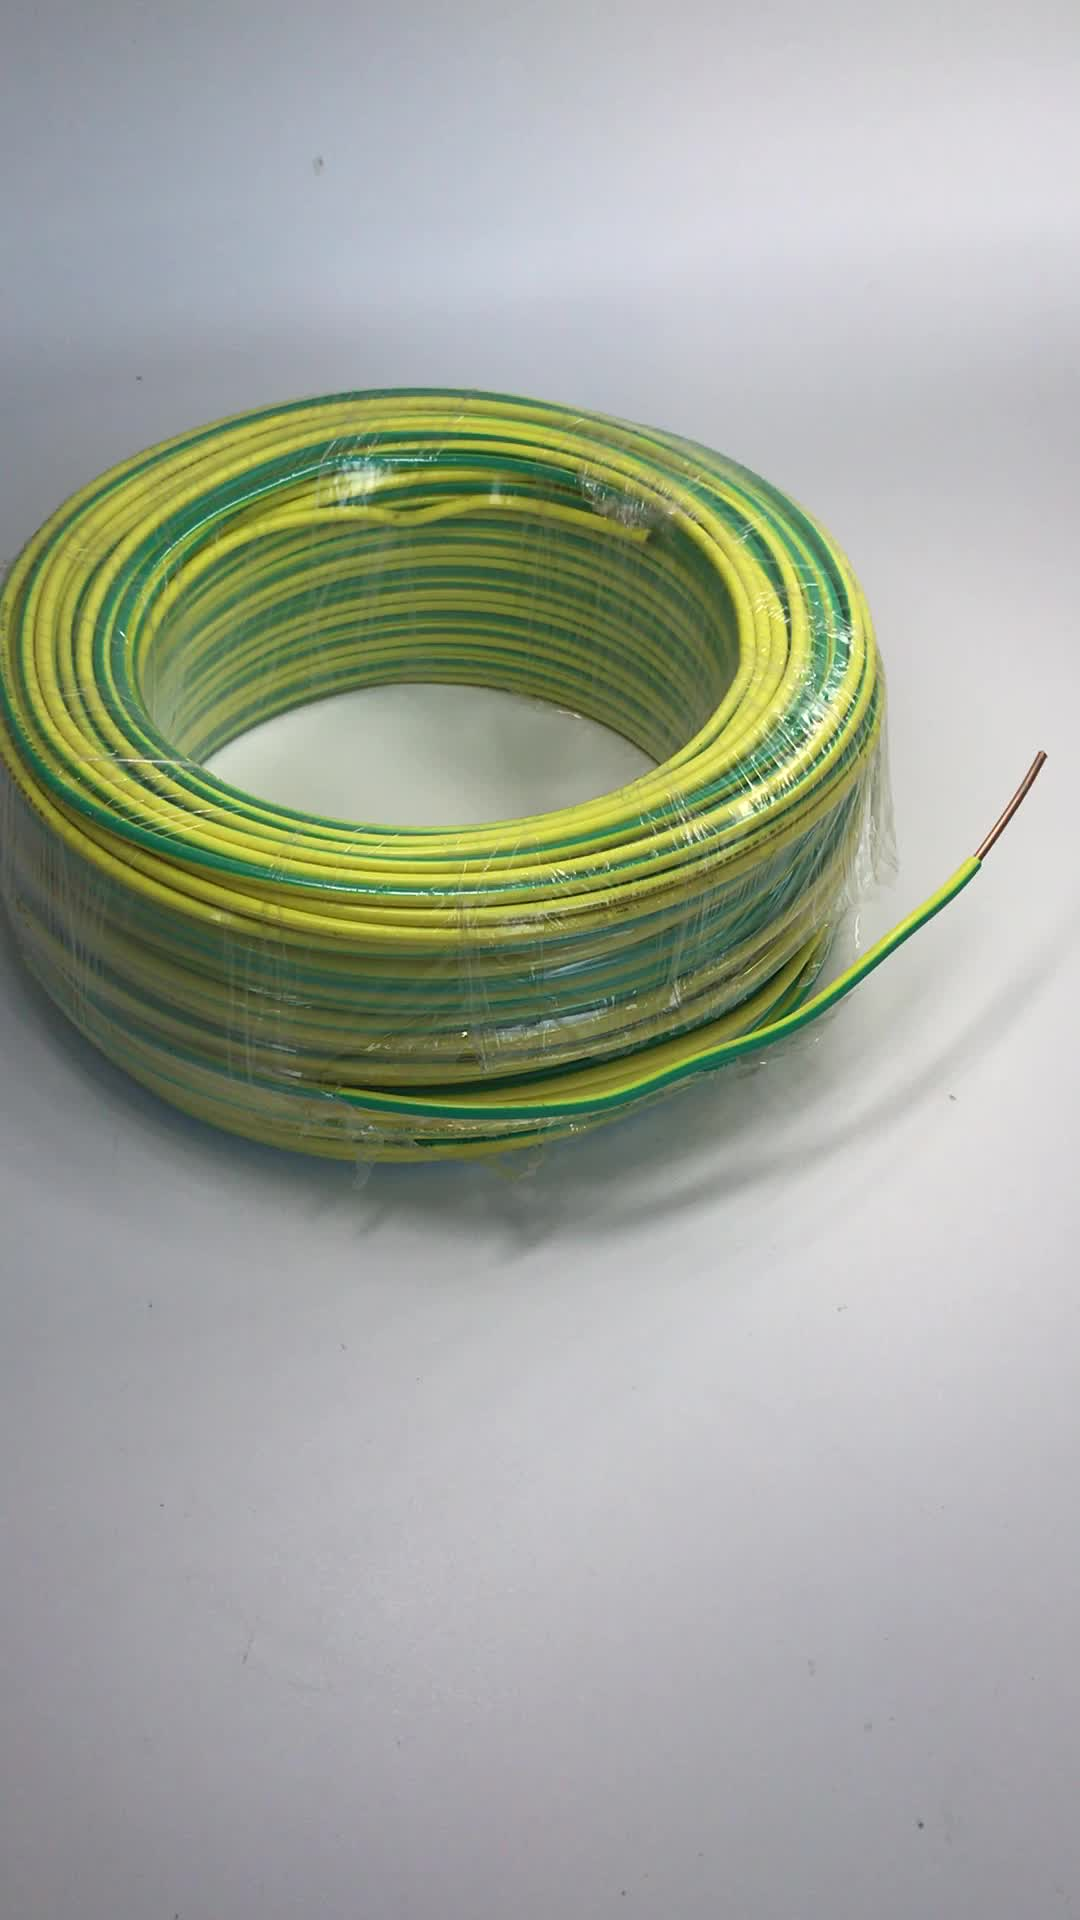 Copper Wire And Cable : Electric wire and cable copper conductor insulated